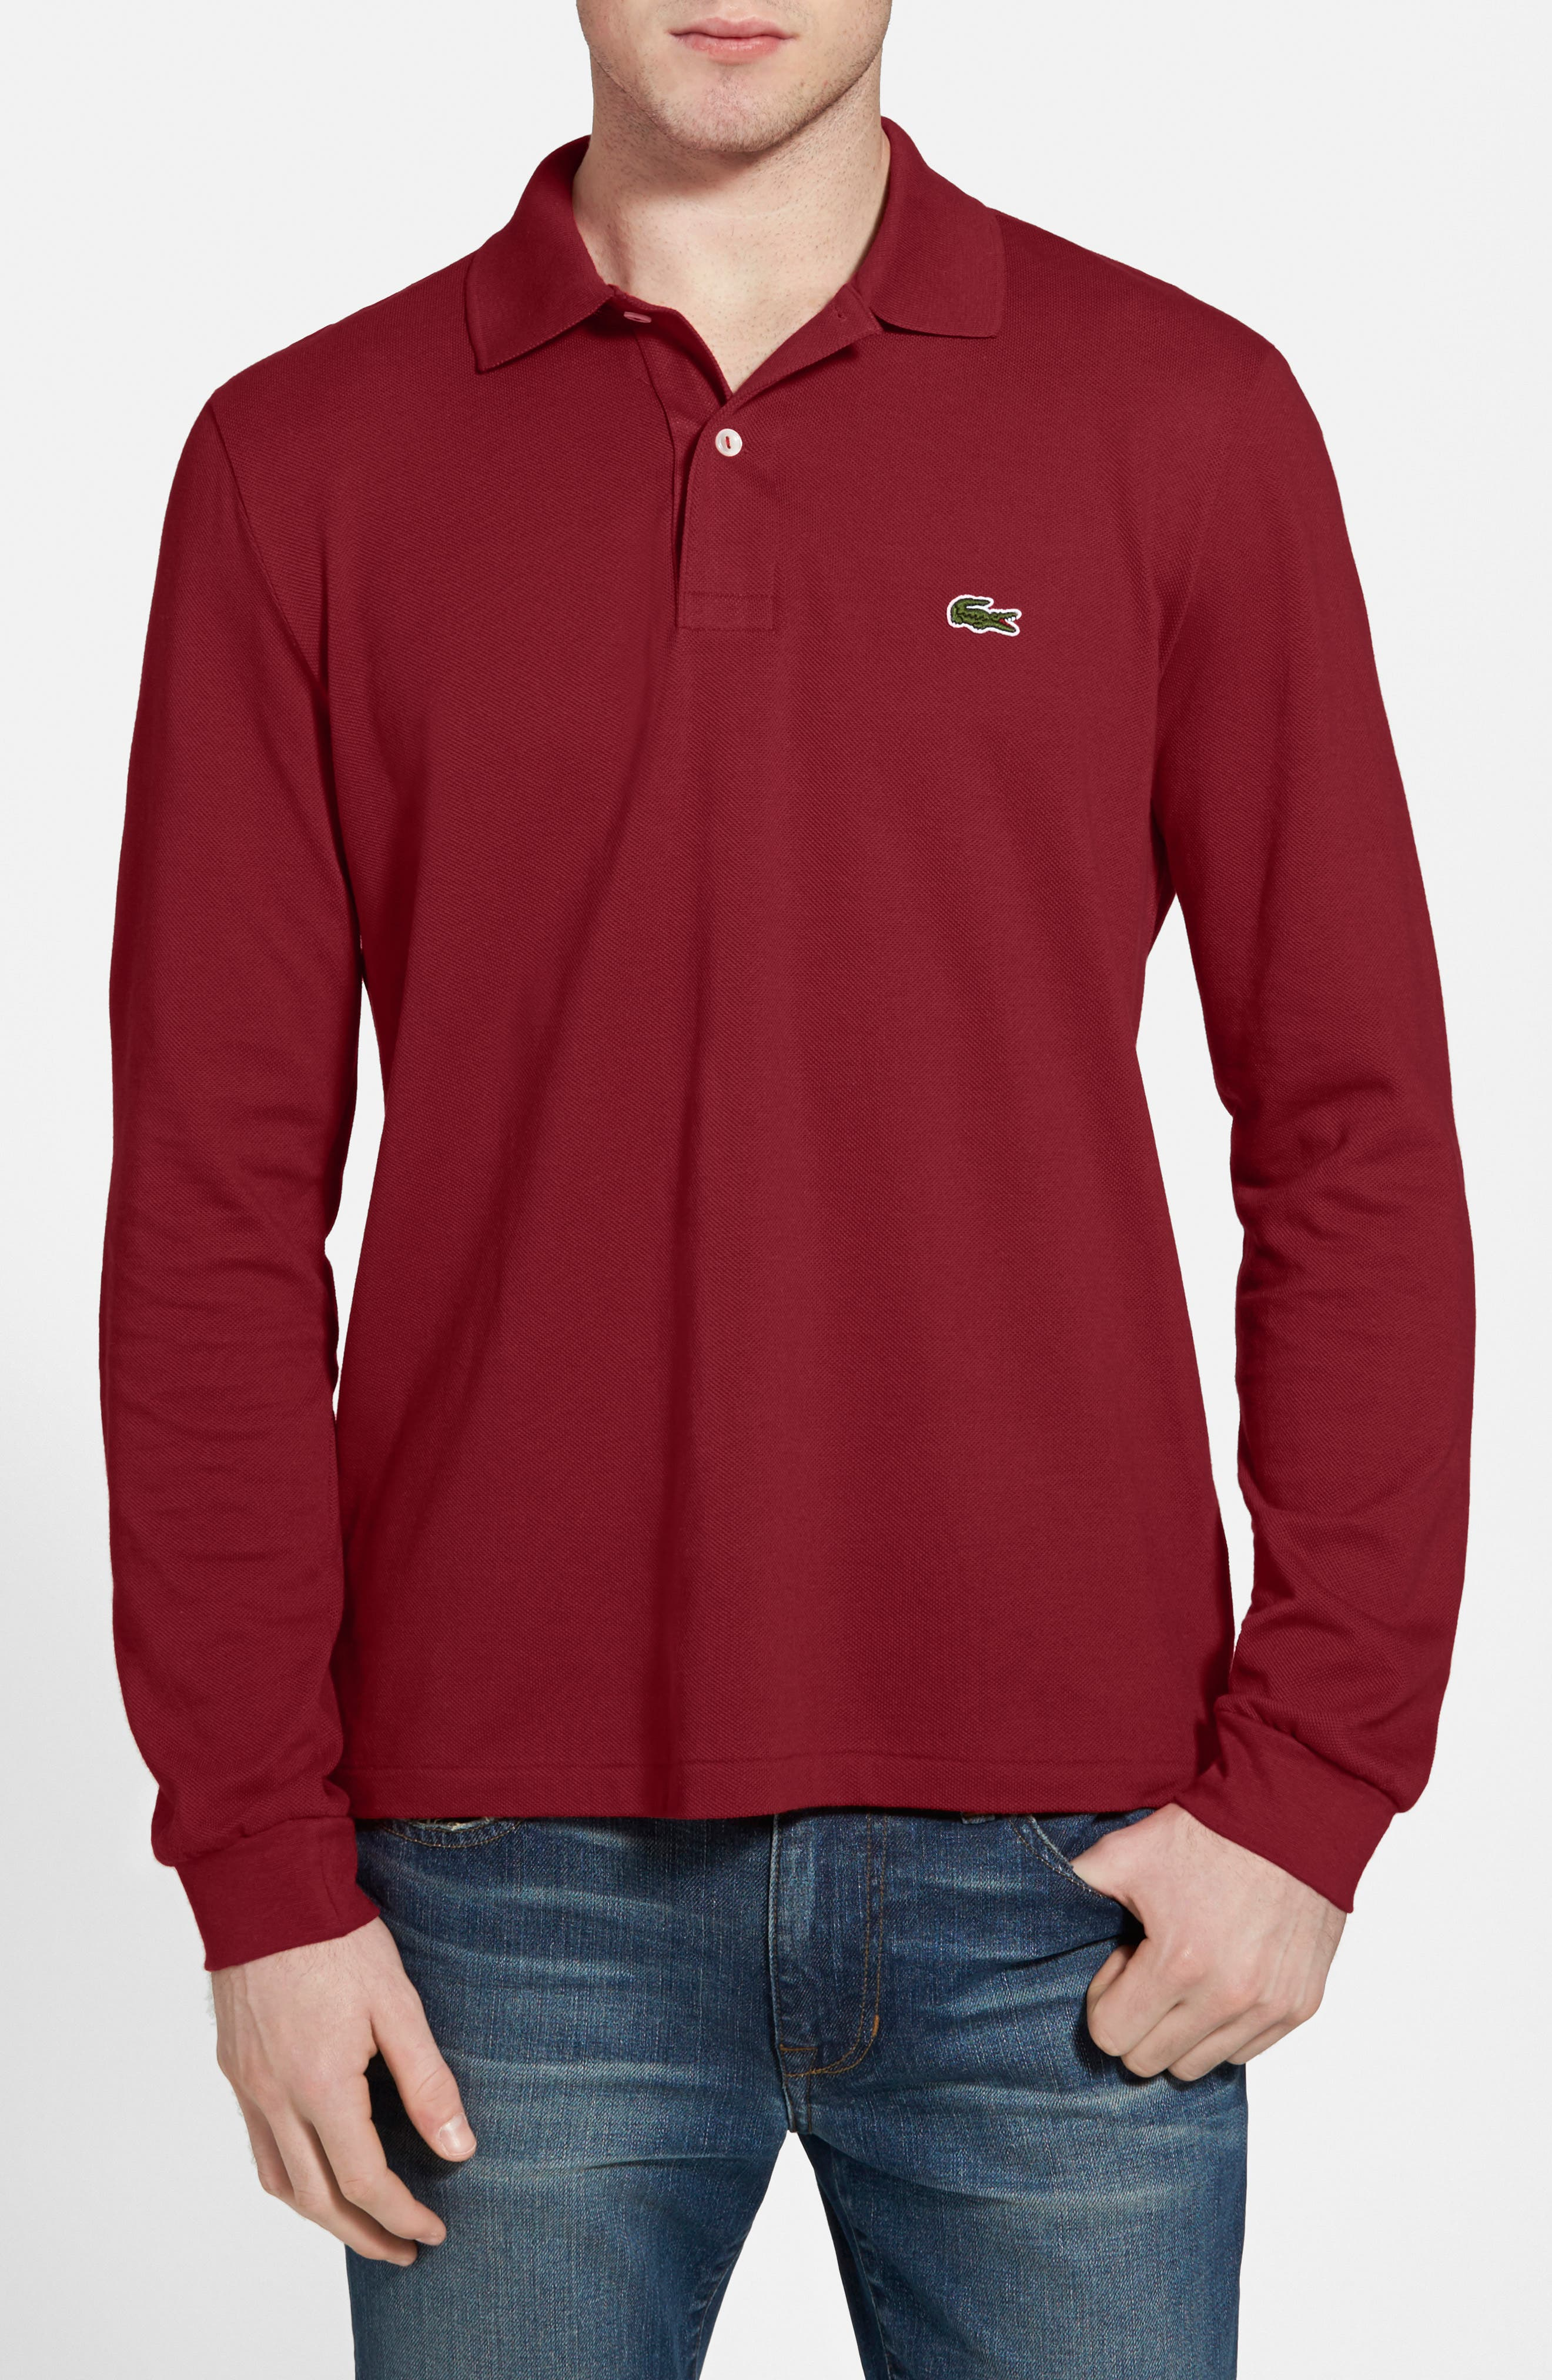 buy lacoste t shirts online india